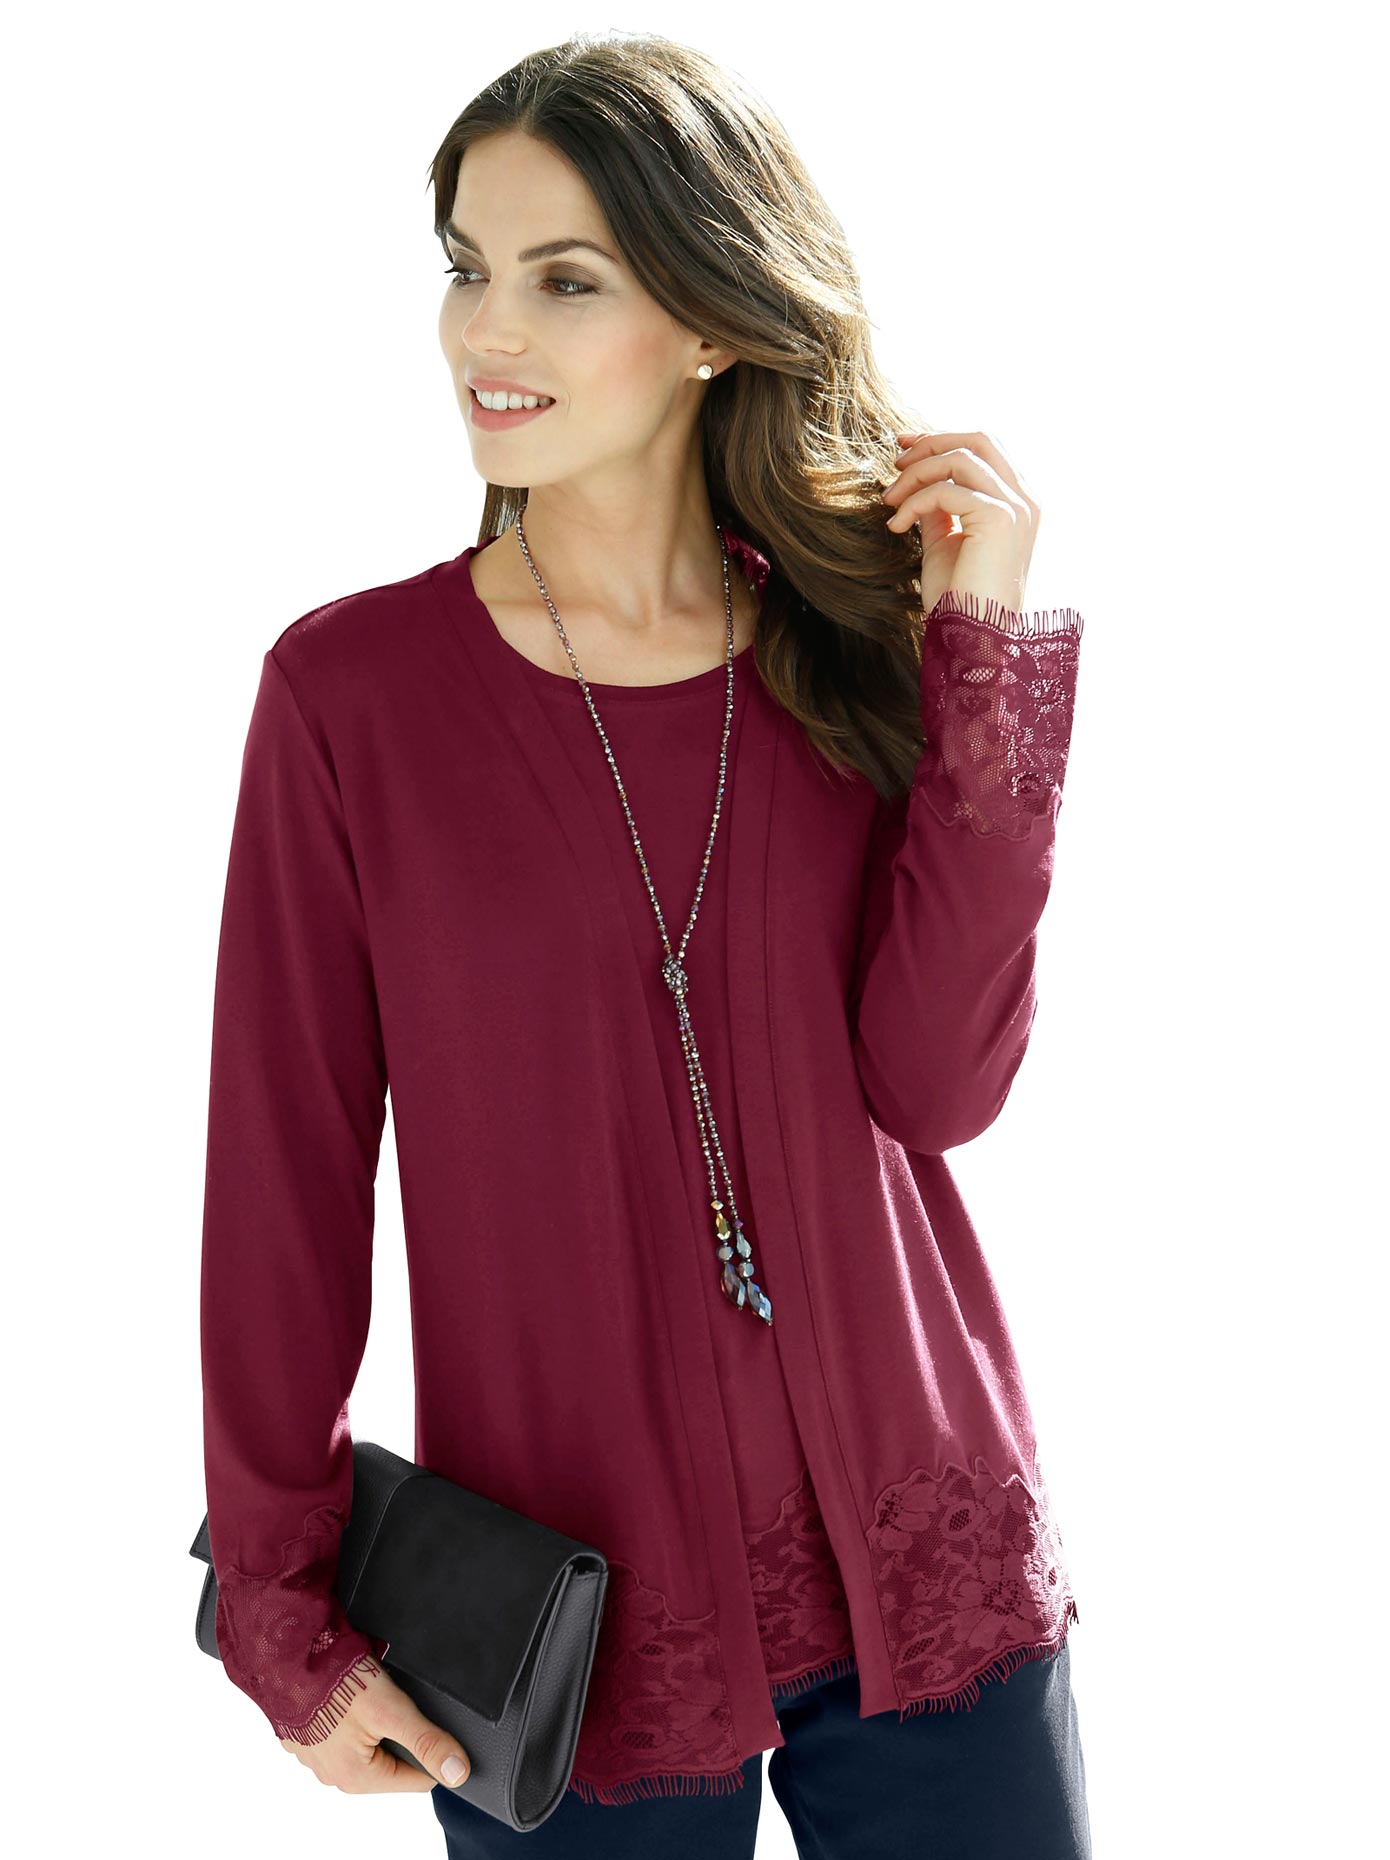 Fair Lady Shirtjacke in offener Form | Bekleidung > Shirts > Shirtjacken | Lady